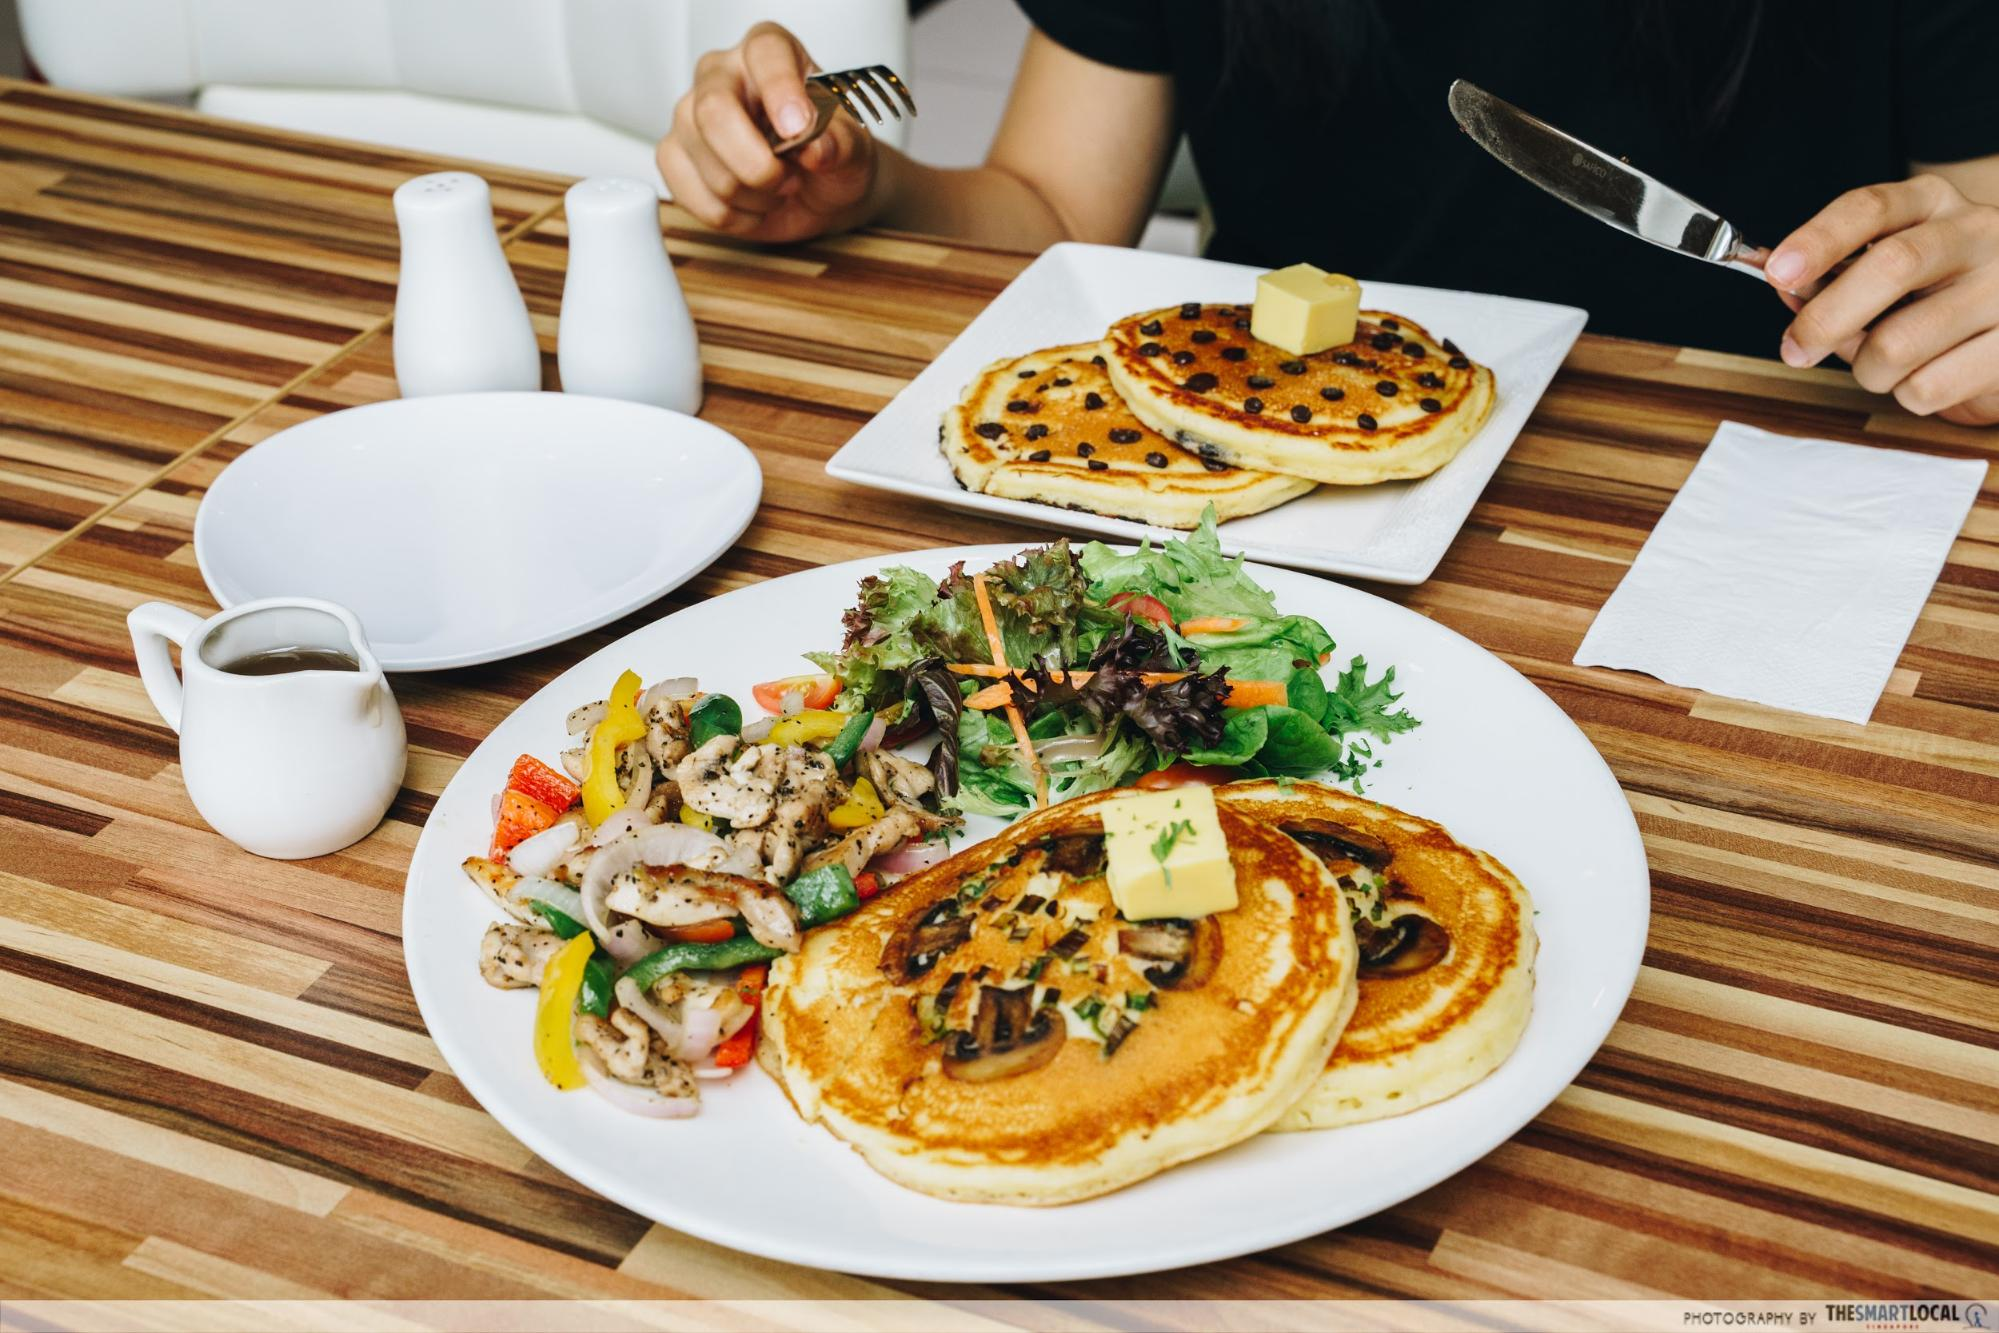 City Square Mall National Day Promos - Beyond Pancakes